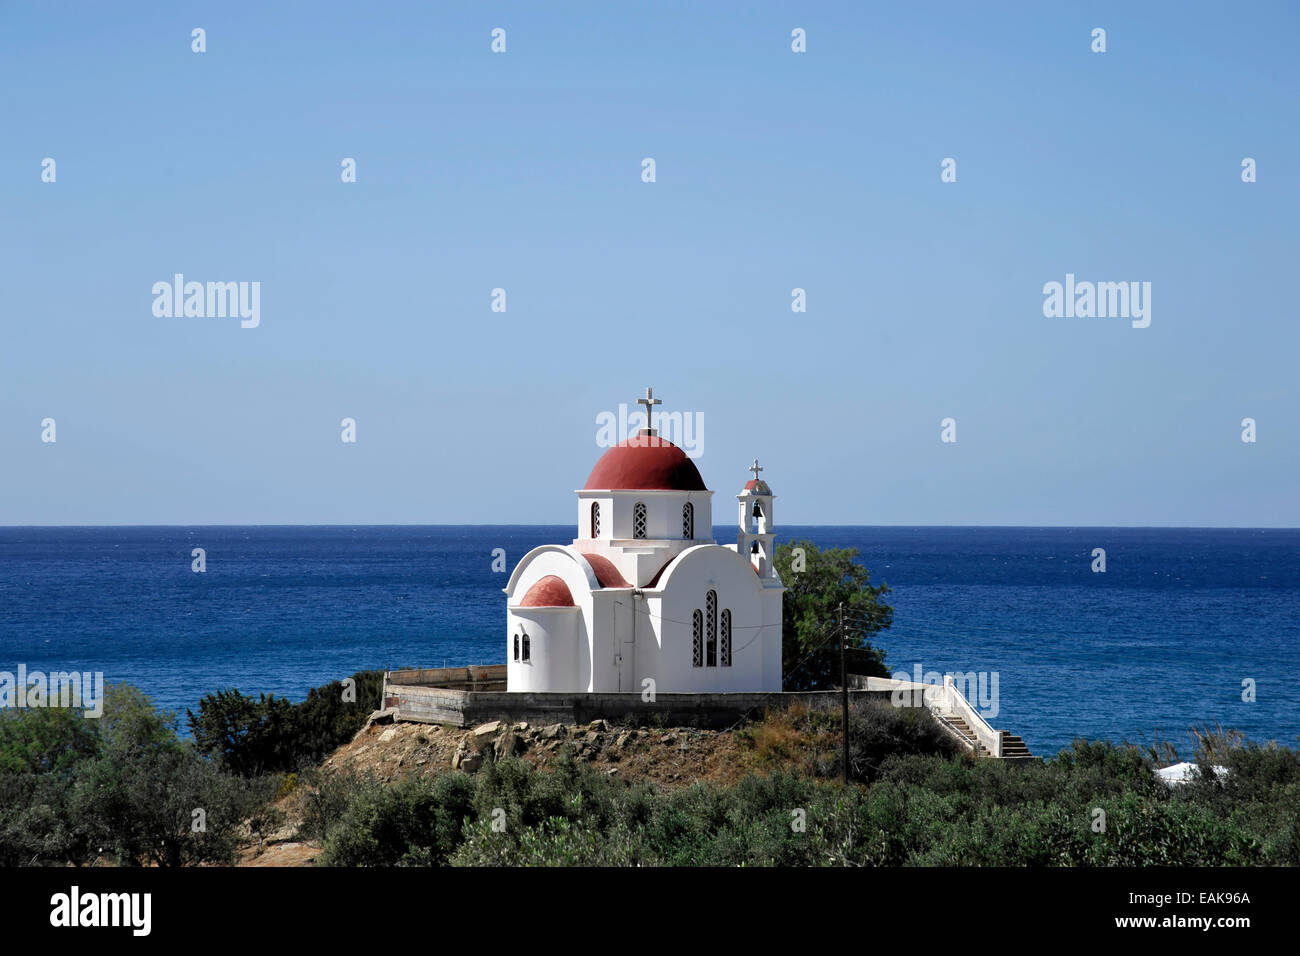 Church of Nea Mirtos, Mirtos, Crete, Greece - Stock Image